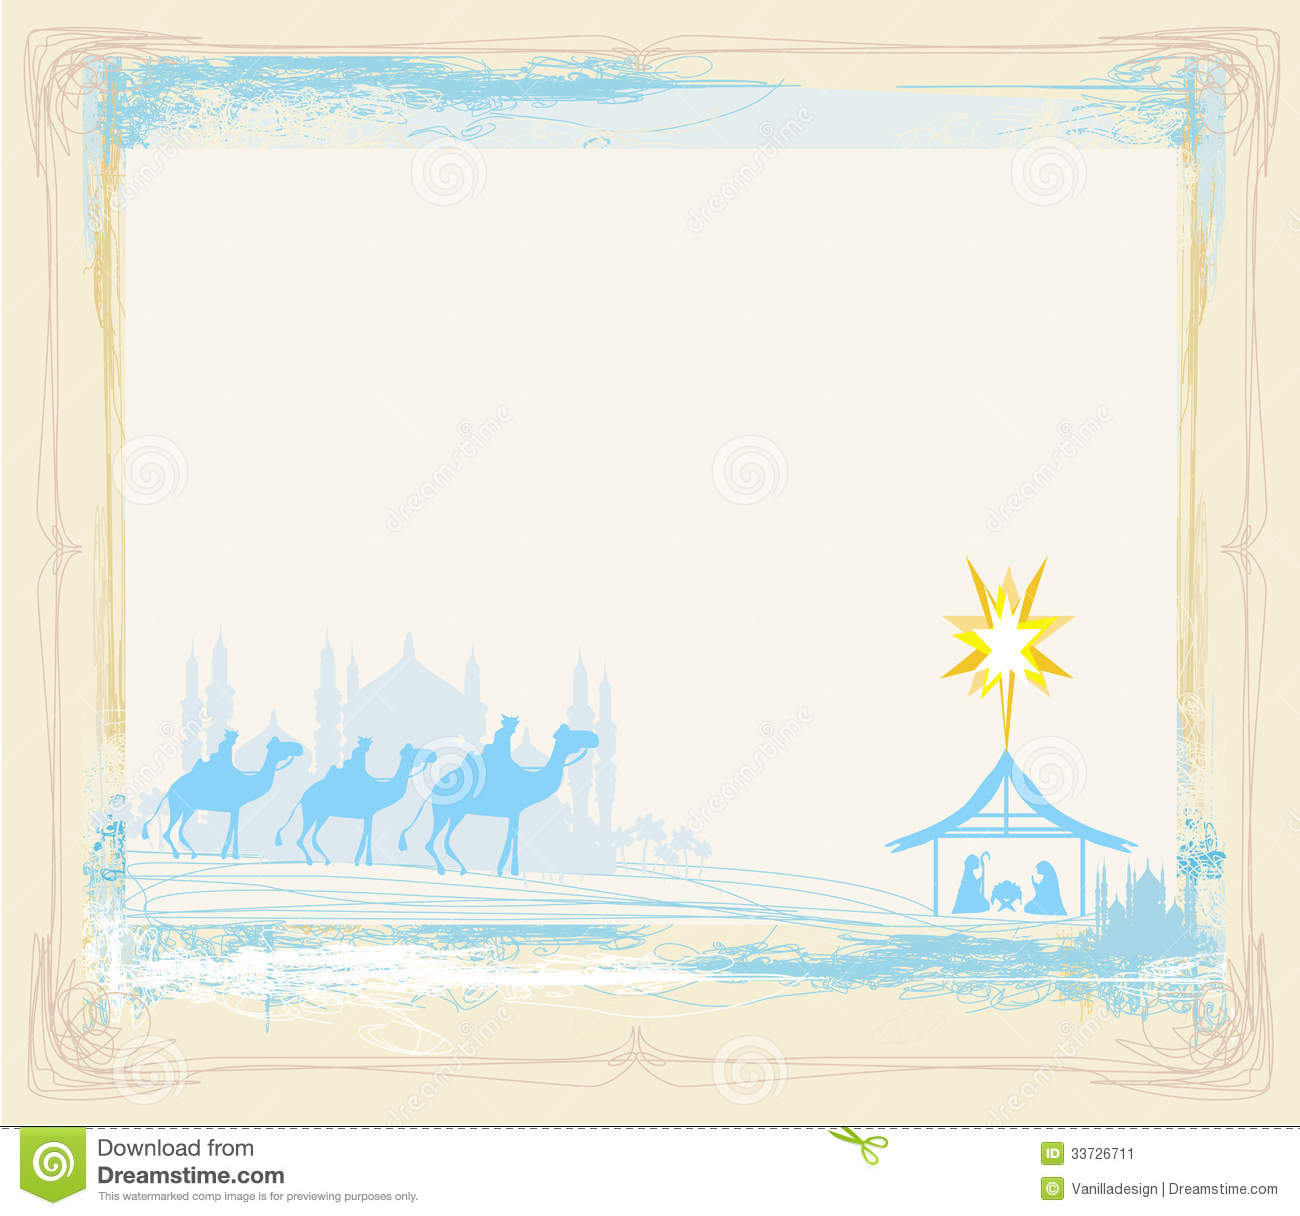 Stock Image: Frame with traditional Christian Christmas Nativity scene